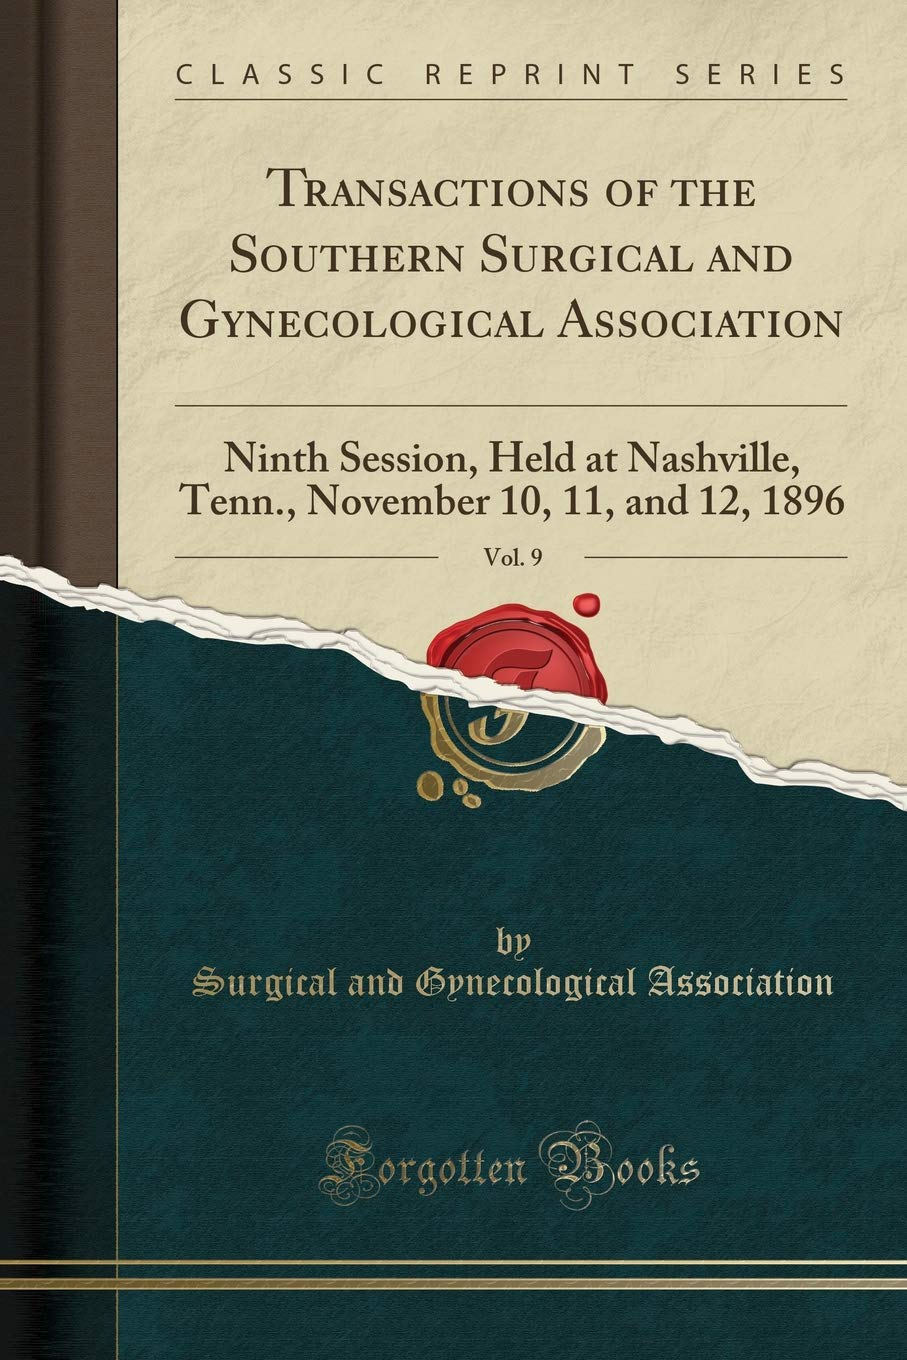 Transactions of the Southern Surgical and Gynecological Association, Vol. 9: Ninth Session, Held at Nashville, Tenn., November 10, 11, and 12, 1896 (Classic Reprint) by Forgotten Books